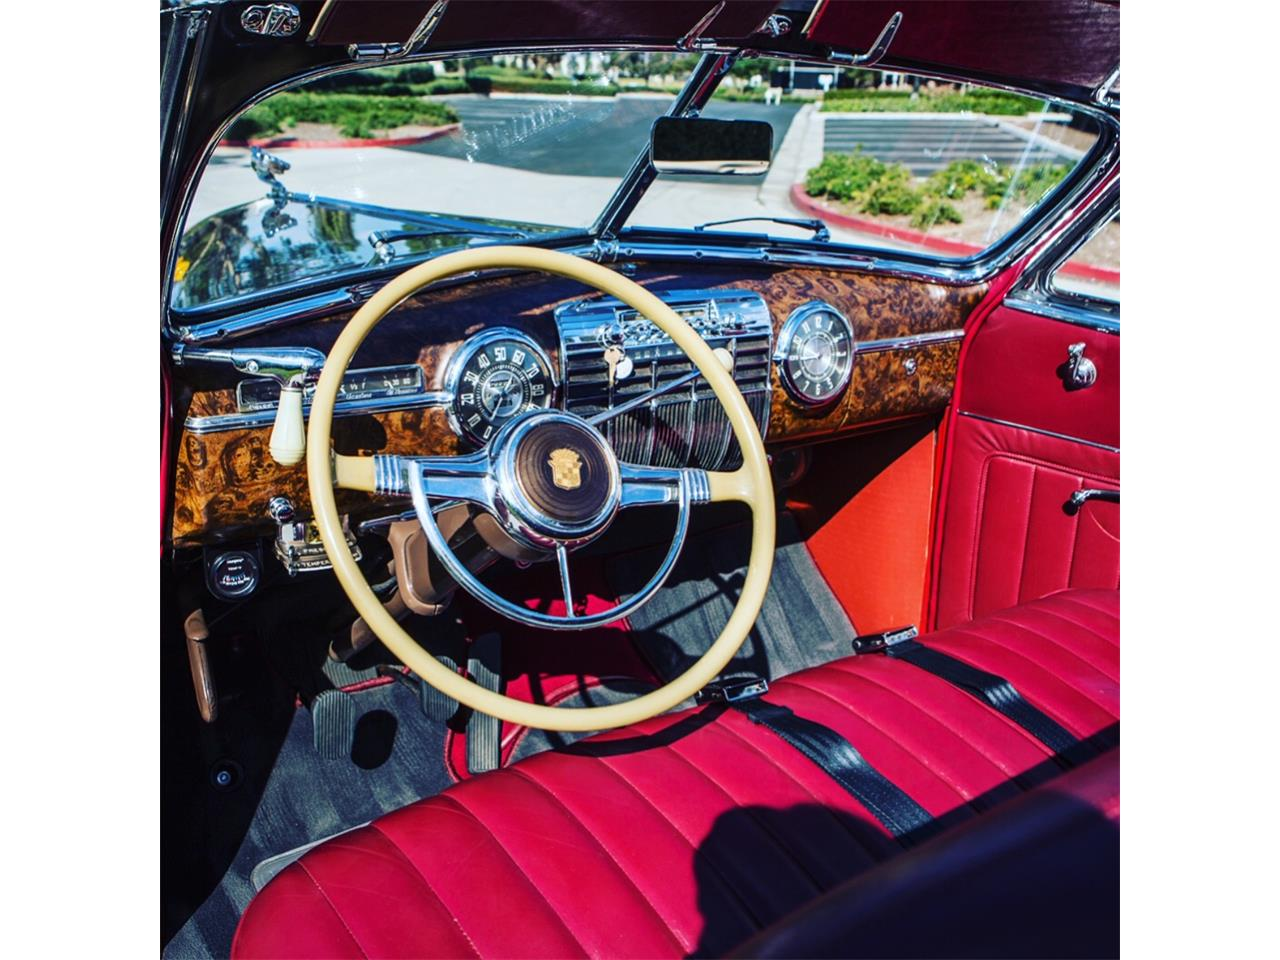 Large Picture of '41 Cadillac Series 62 - $88,000.00 - N67J